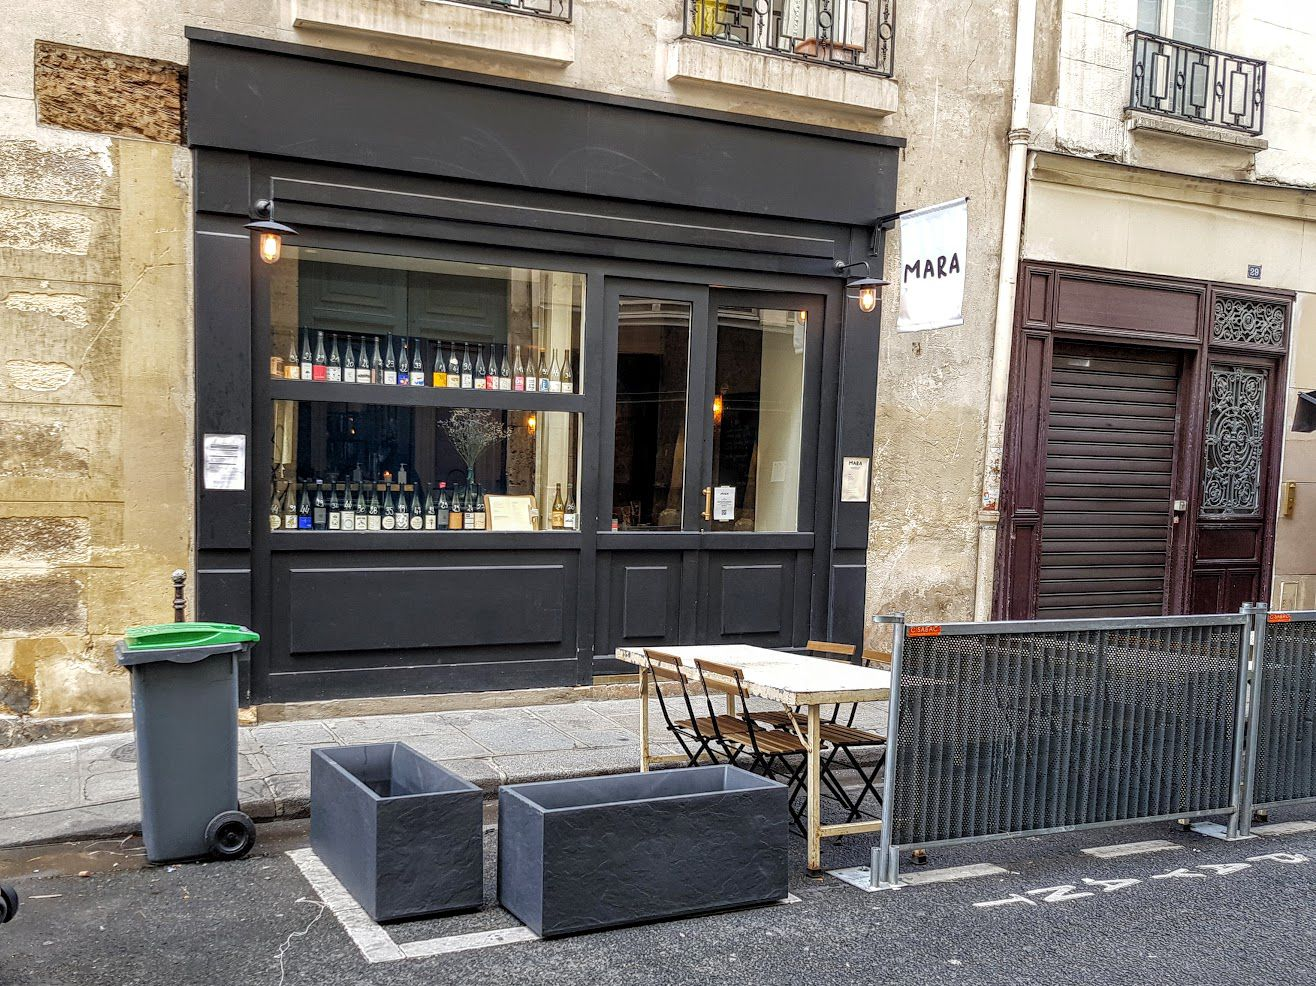 Mara restaurant Paris 3 rue Saintonge